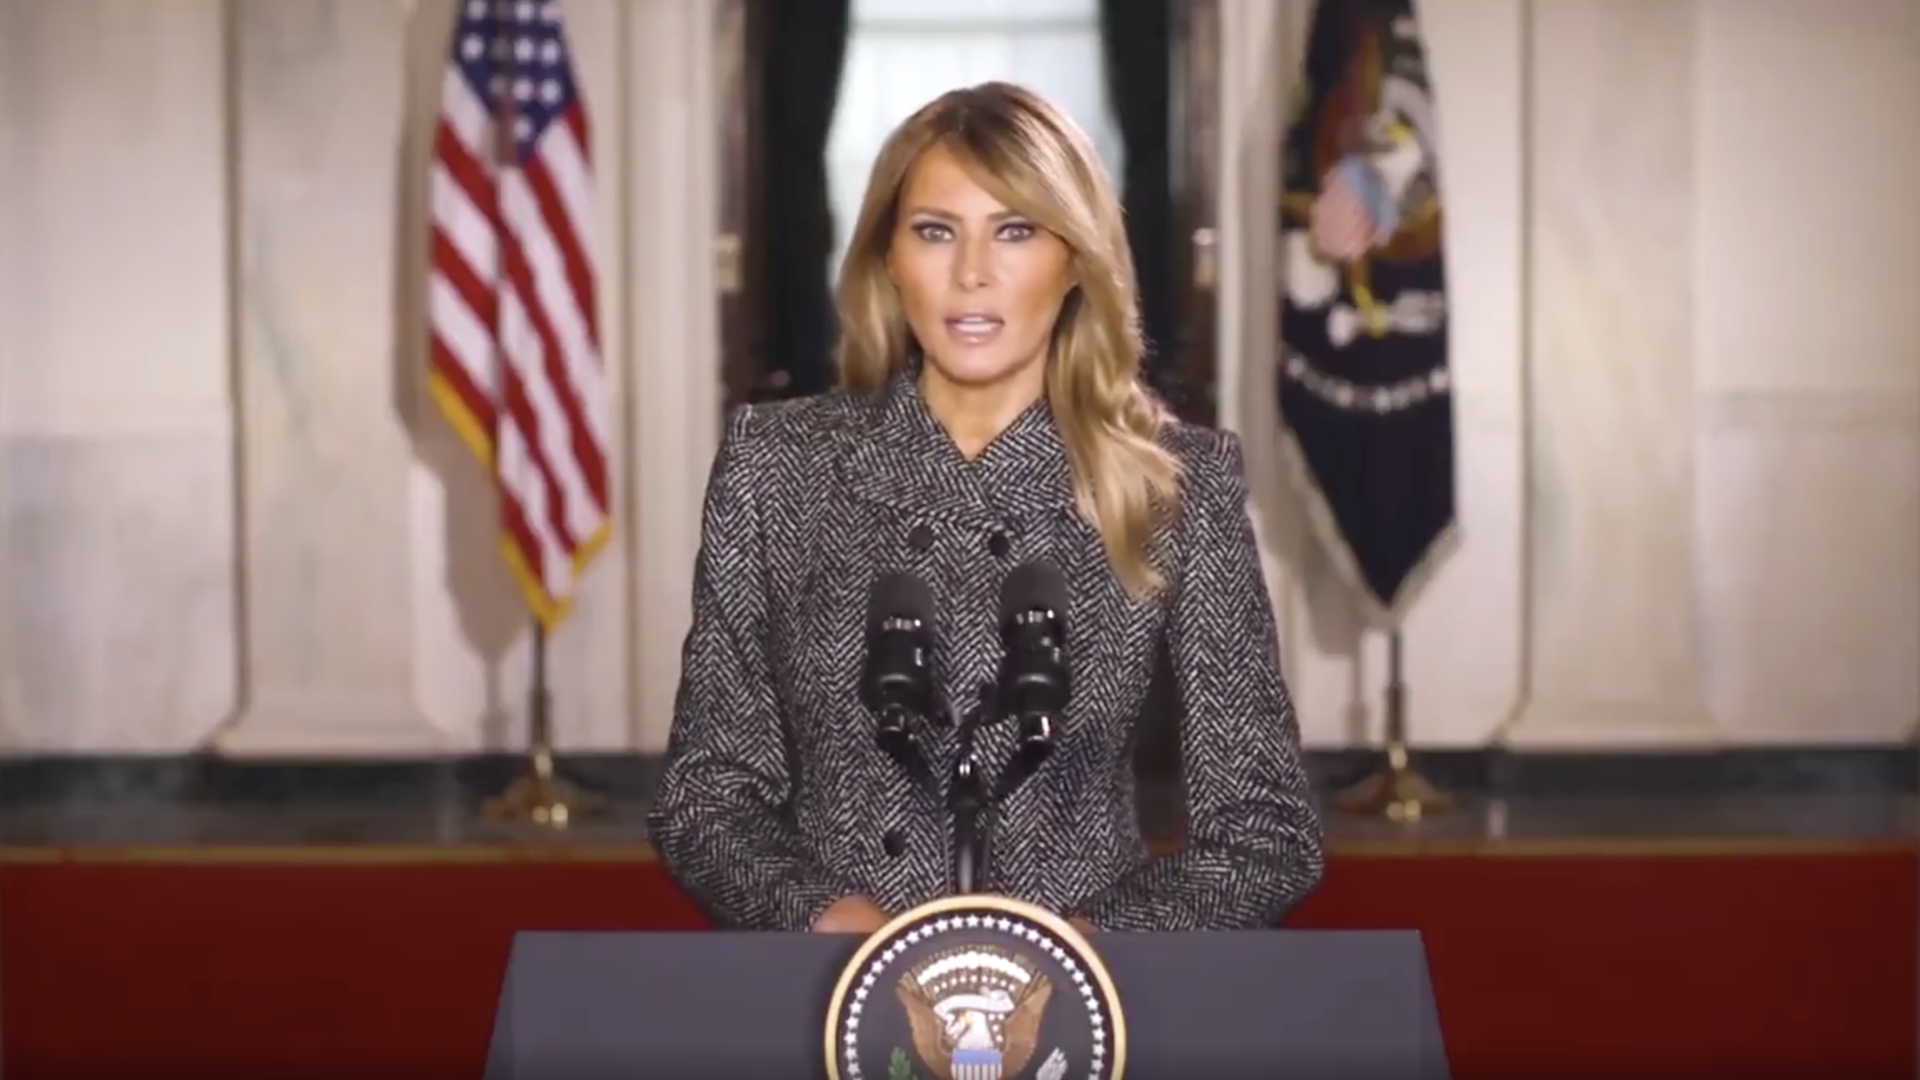 Melania Trump Spends Her Last Days In The White House Focused On Her Future While Her Husband Rages About The Past The Washington Post